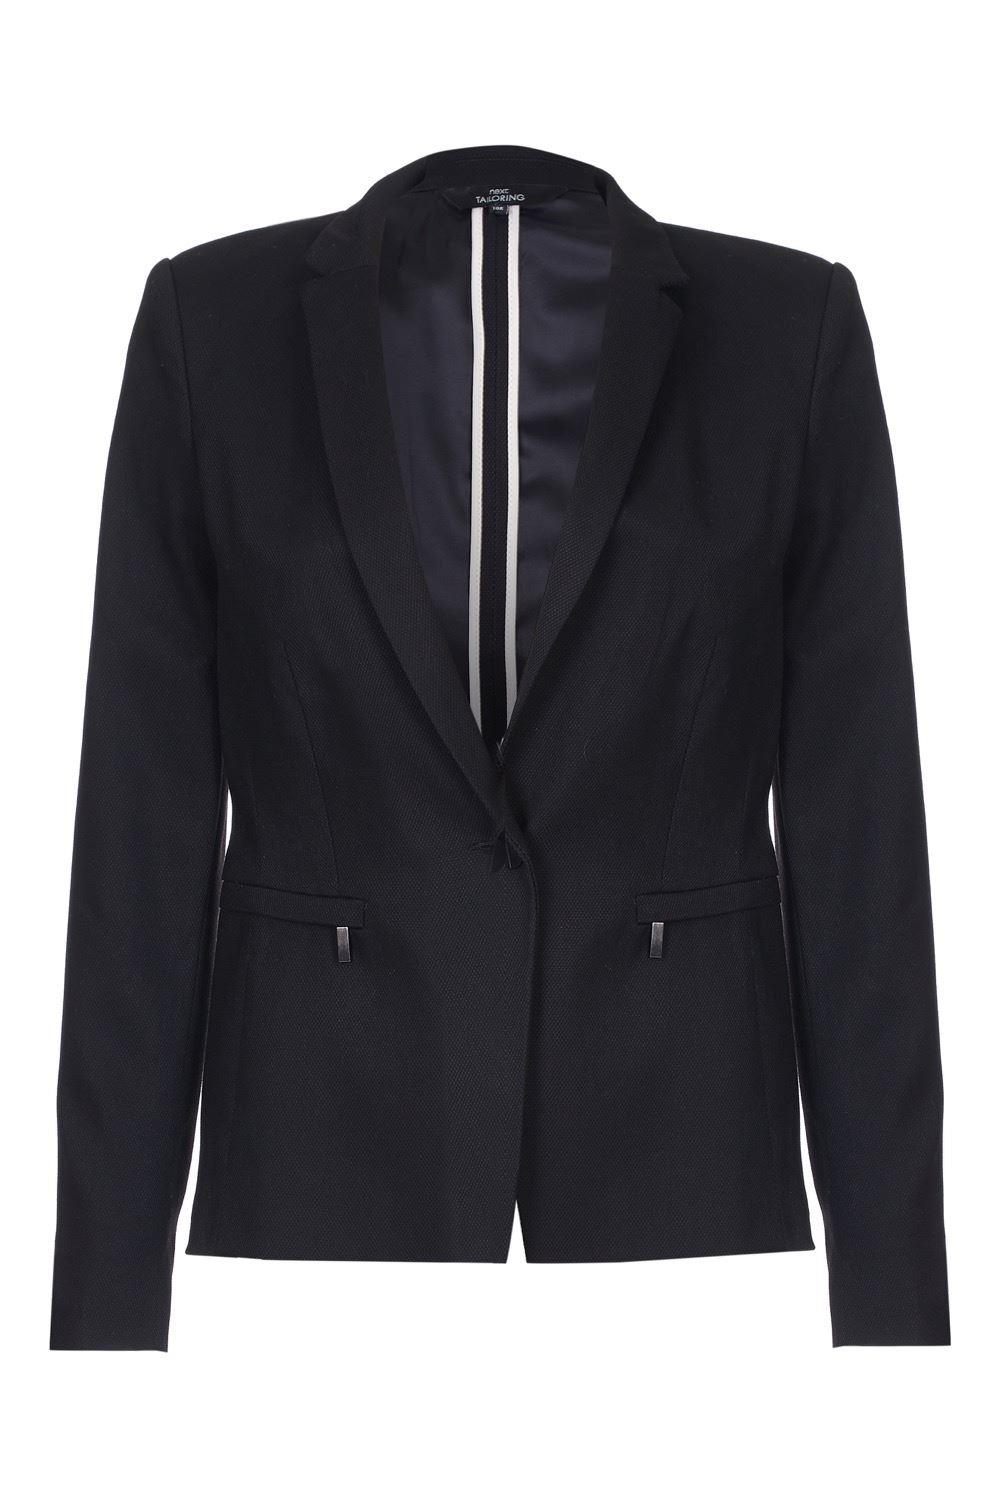 Anastasia Black Summer Blazer Jacket